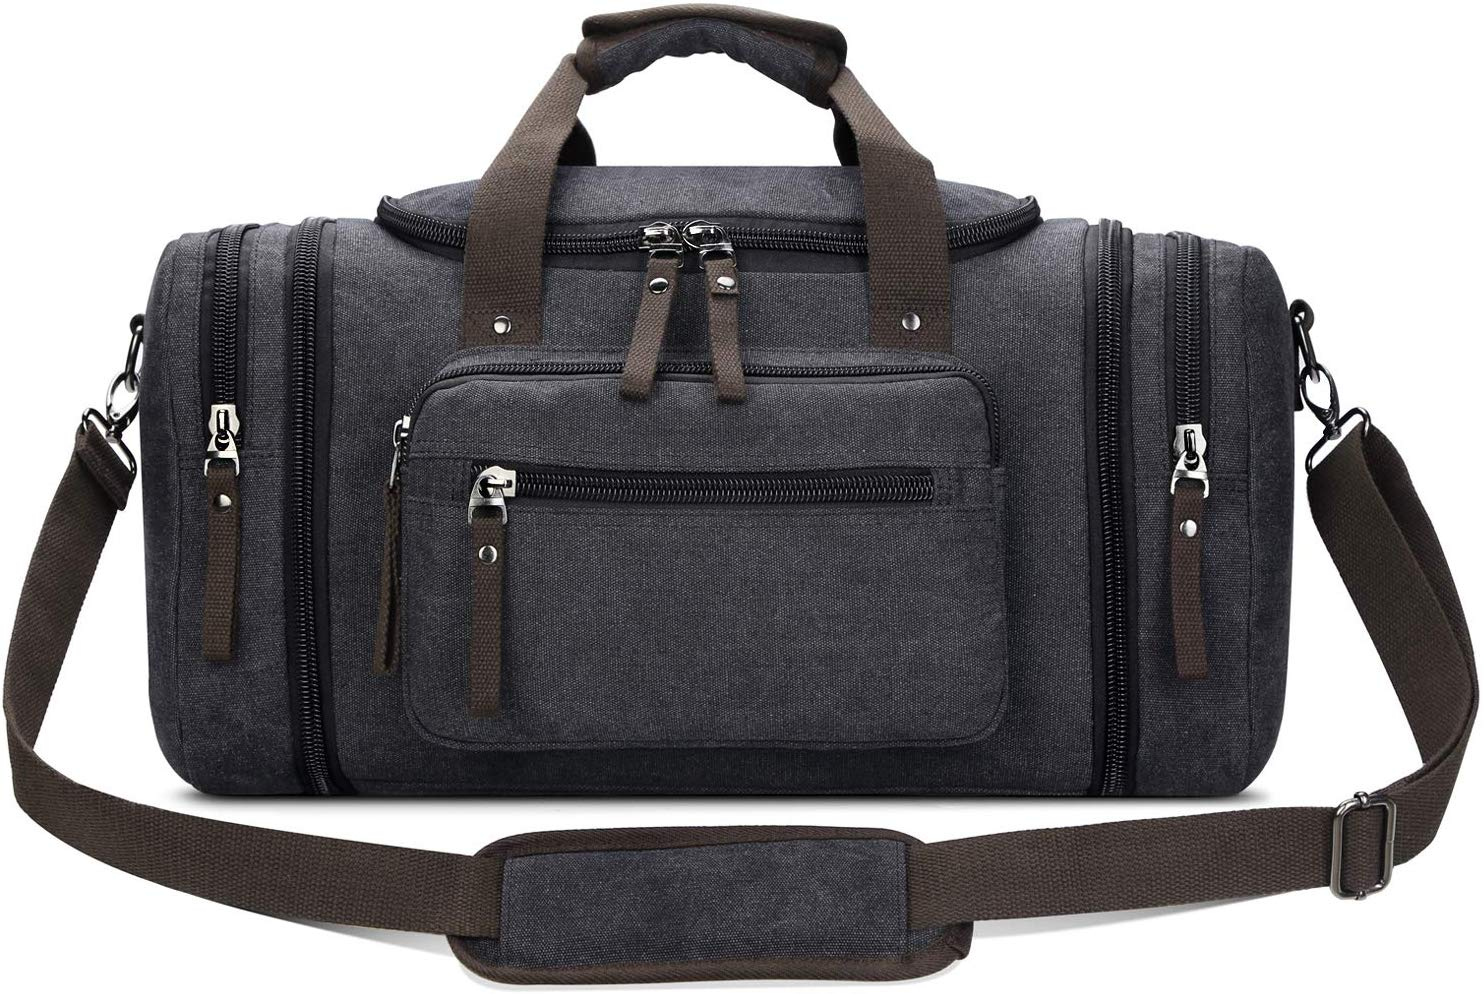 Toupons Travel Duffel Bag for Men Canvas Overnight Weekend Bag